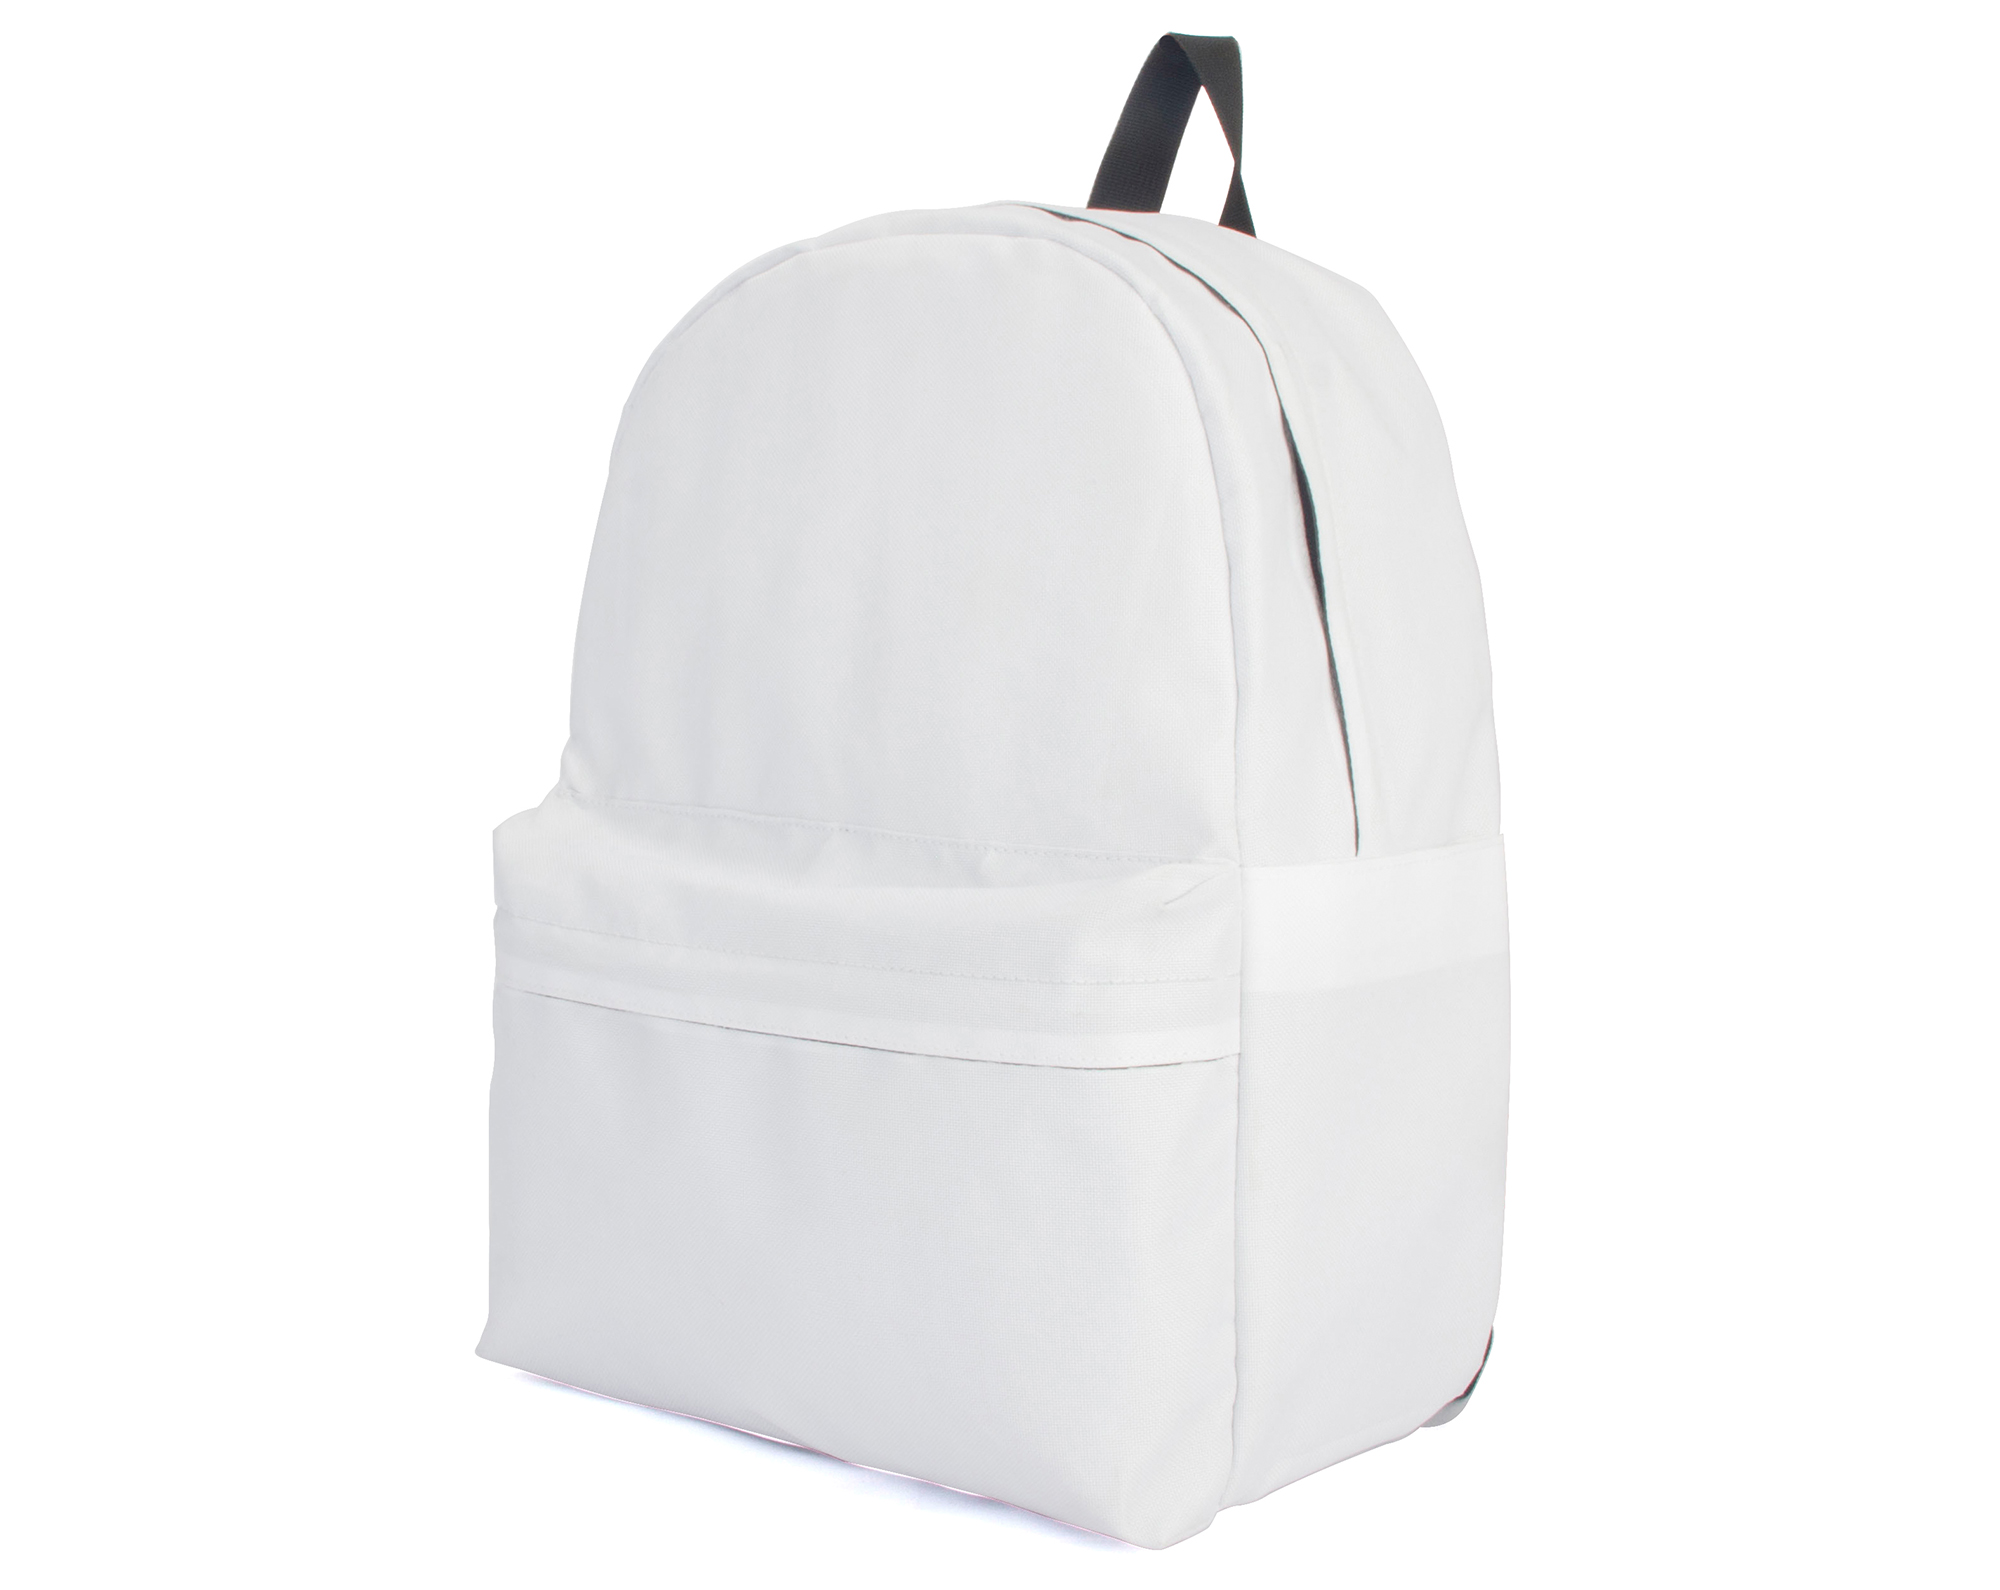 Backpack Pillow Premium Backpack Pillow Profits Knowledge Base